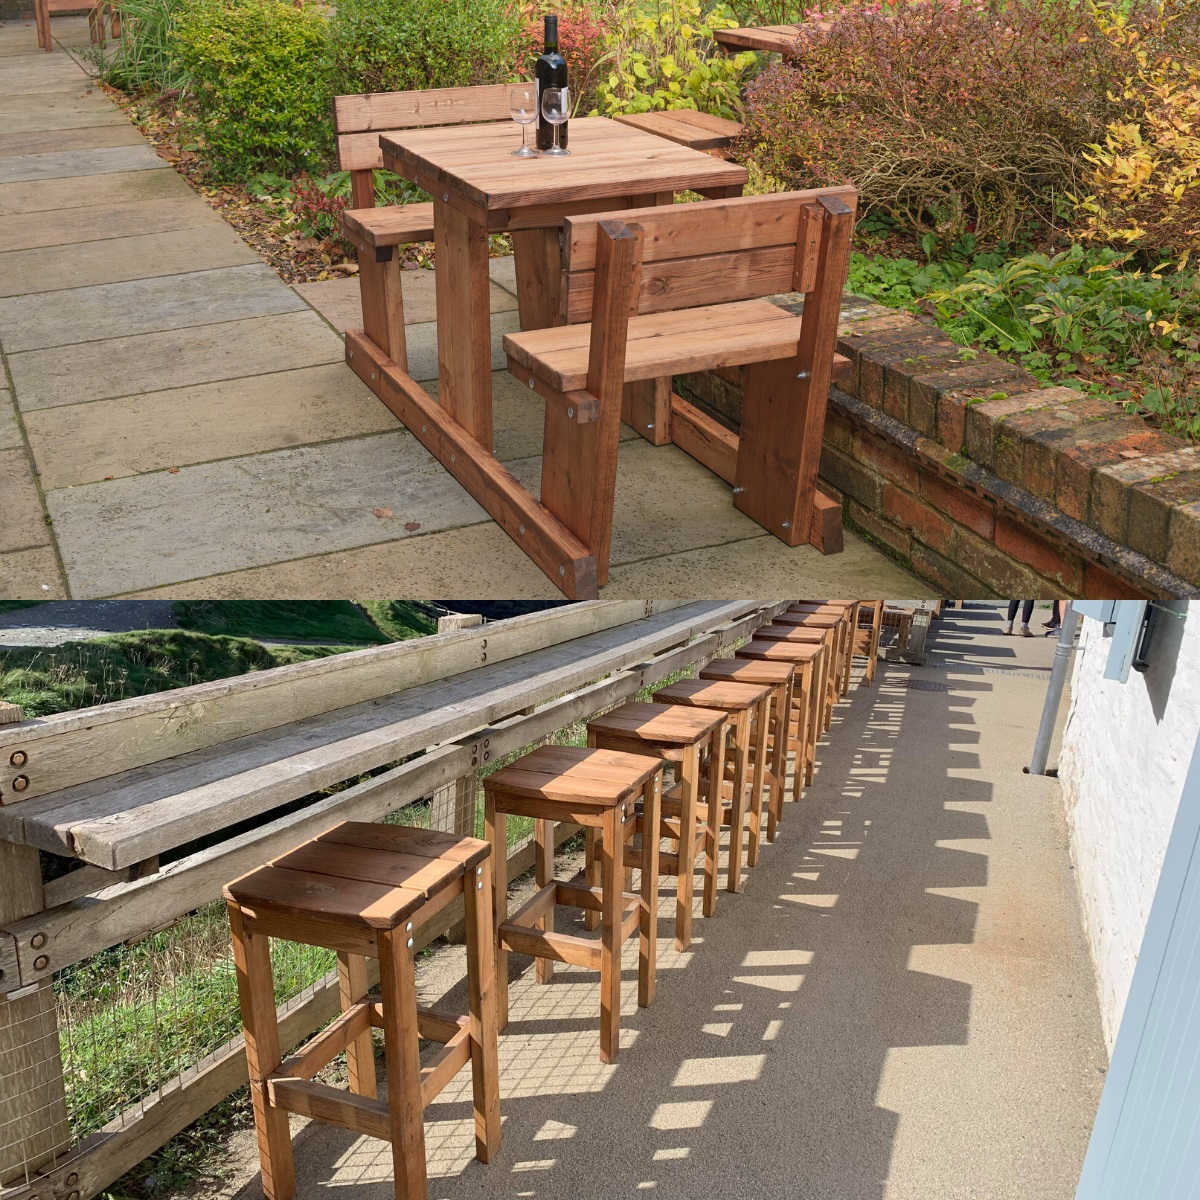 A 2 seater wooden picnic table at the edge of a pub patio and a line of bar stools against a fence which has a shelf at tintagel castle cafe